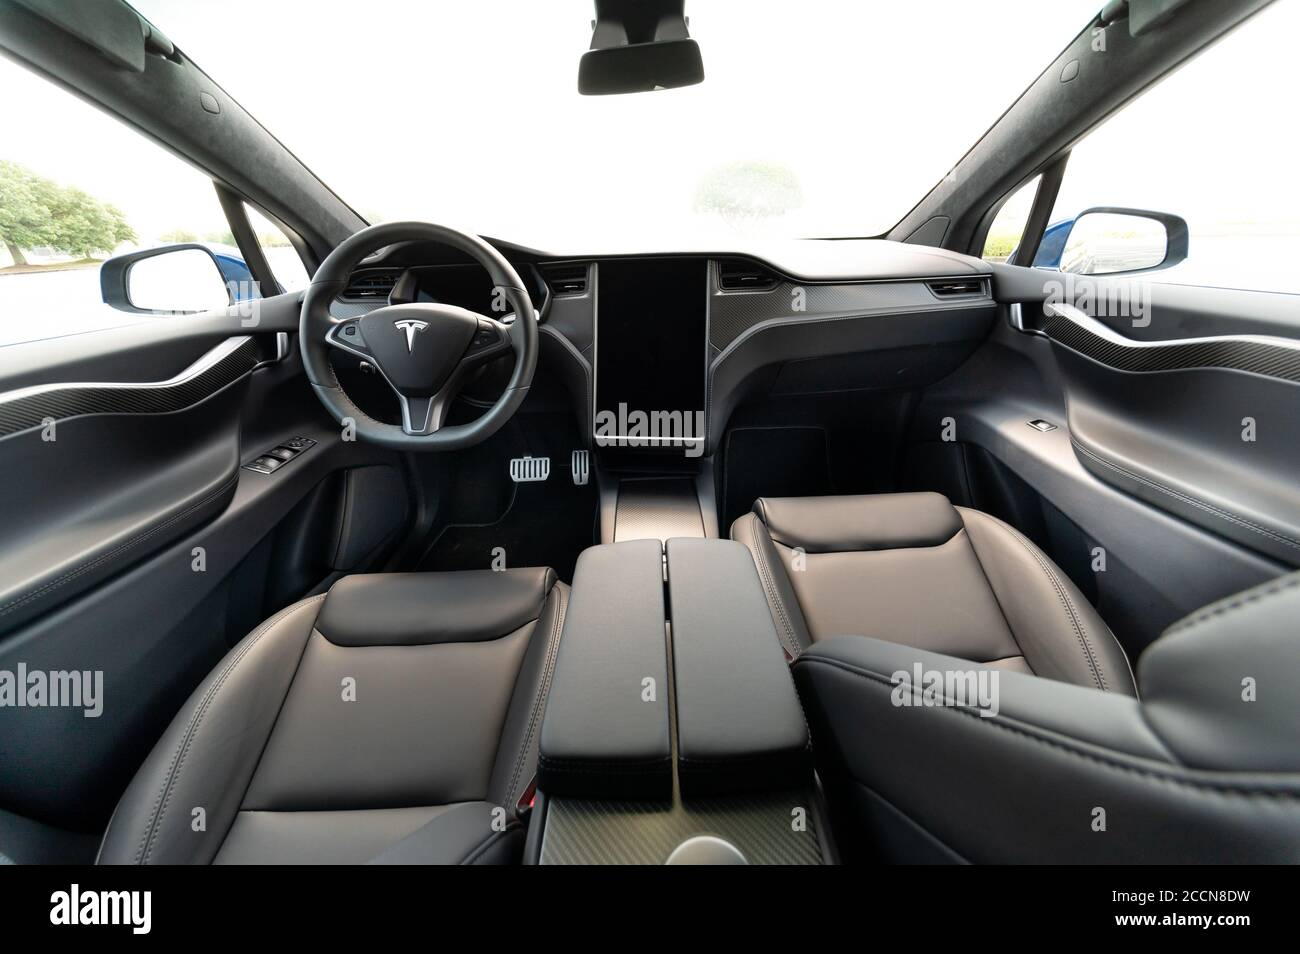 The Interior Of A Full Sized All Electric Luxury Crossover Suv Tesla Model X Black And Grey Stock Photo Alamy